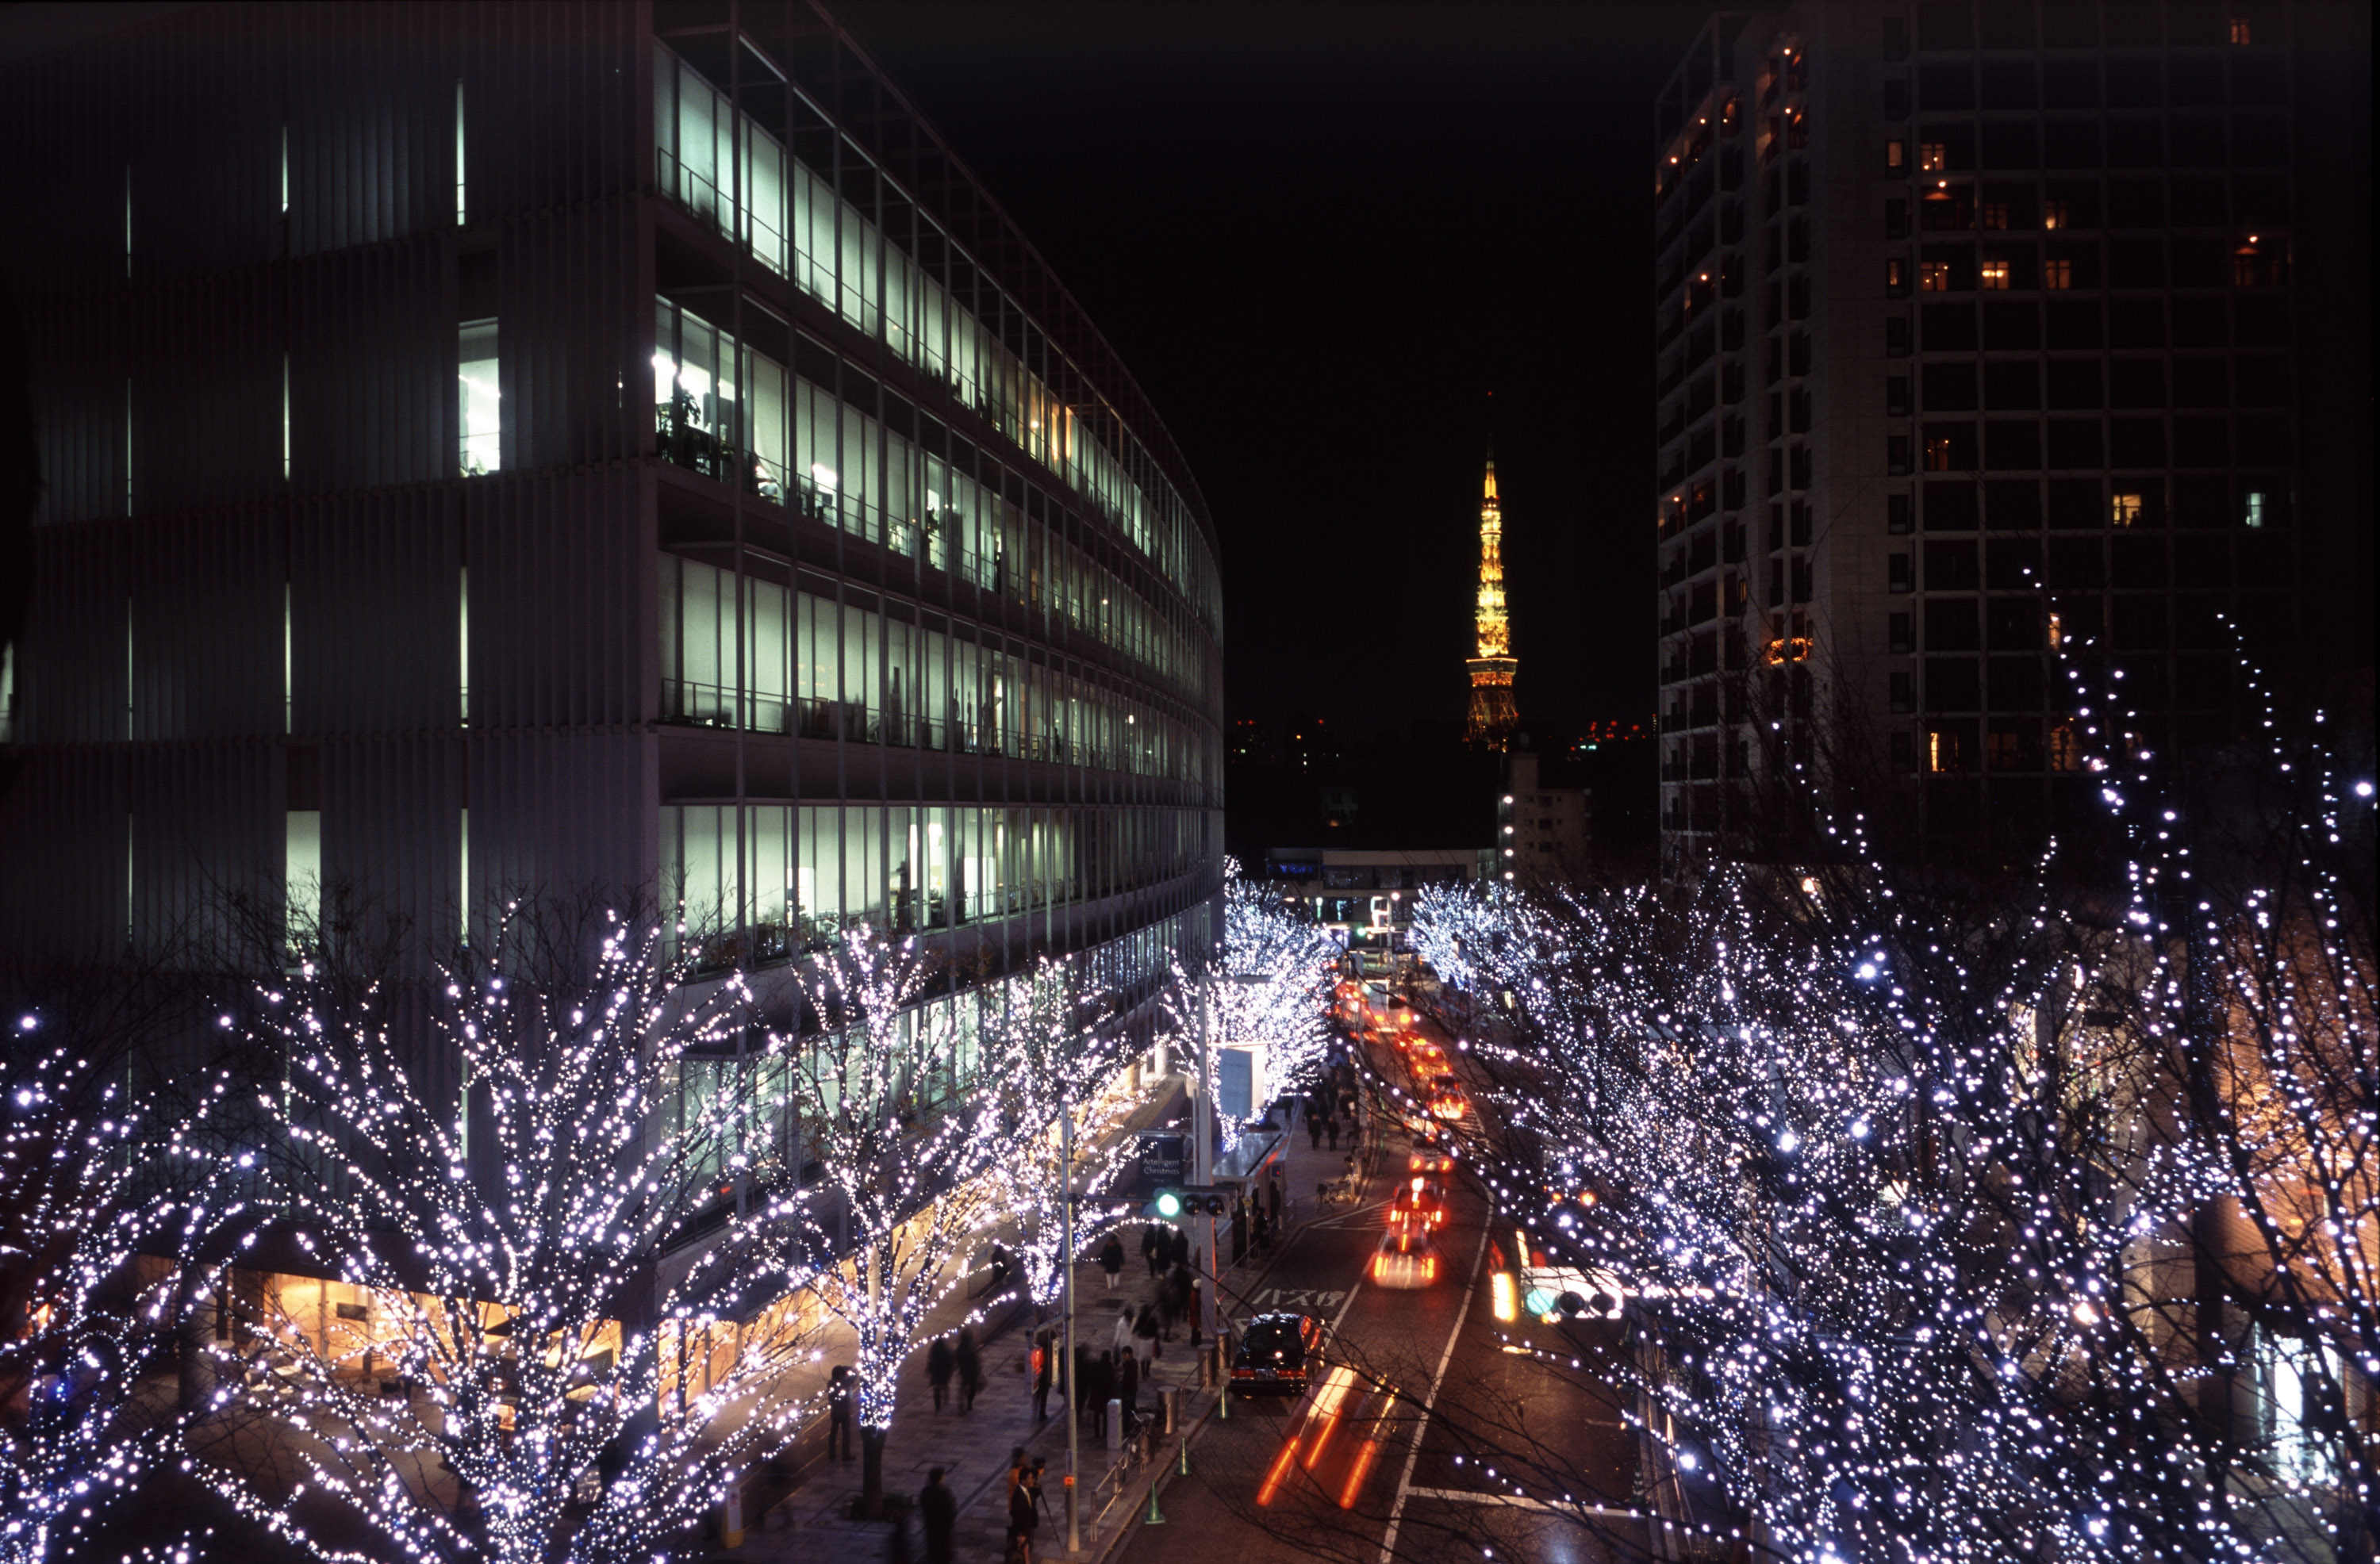 A modern tokyo street scene with christmas lights illuminating a winter evening